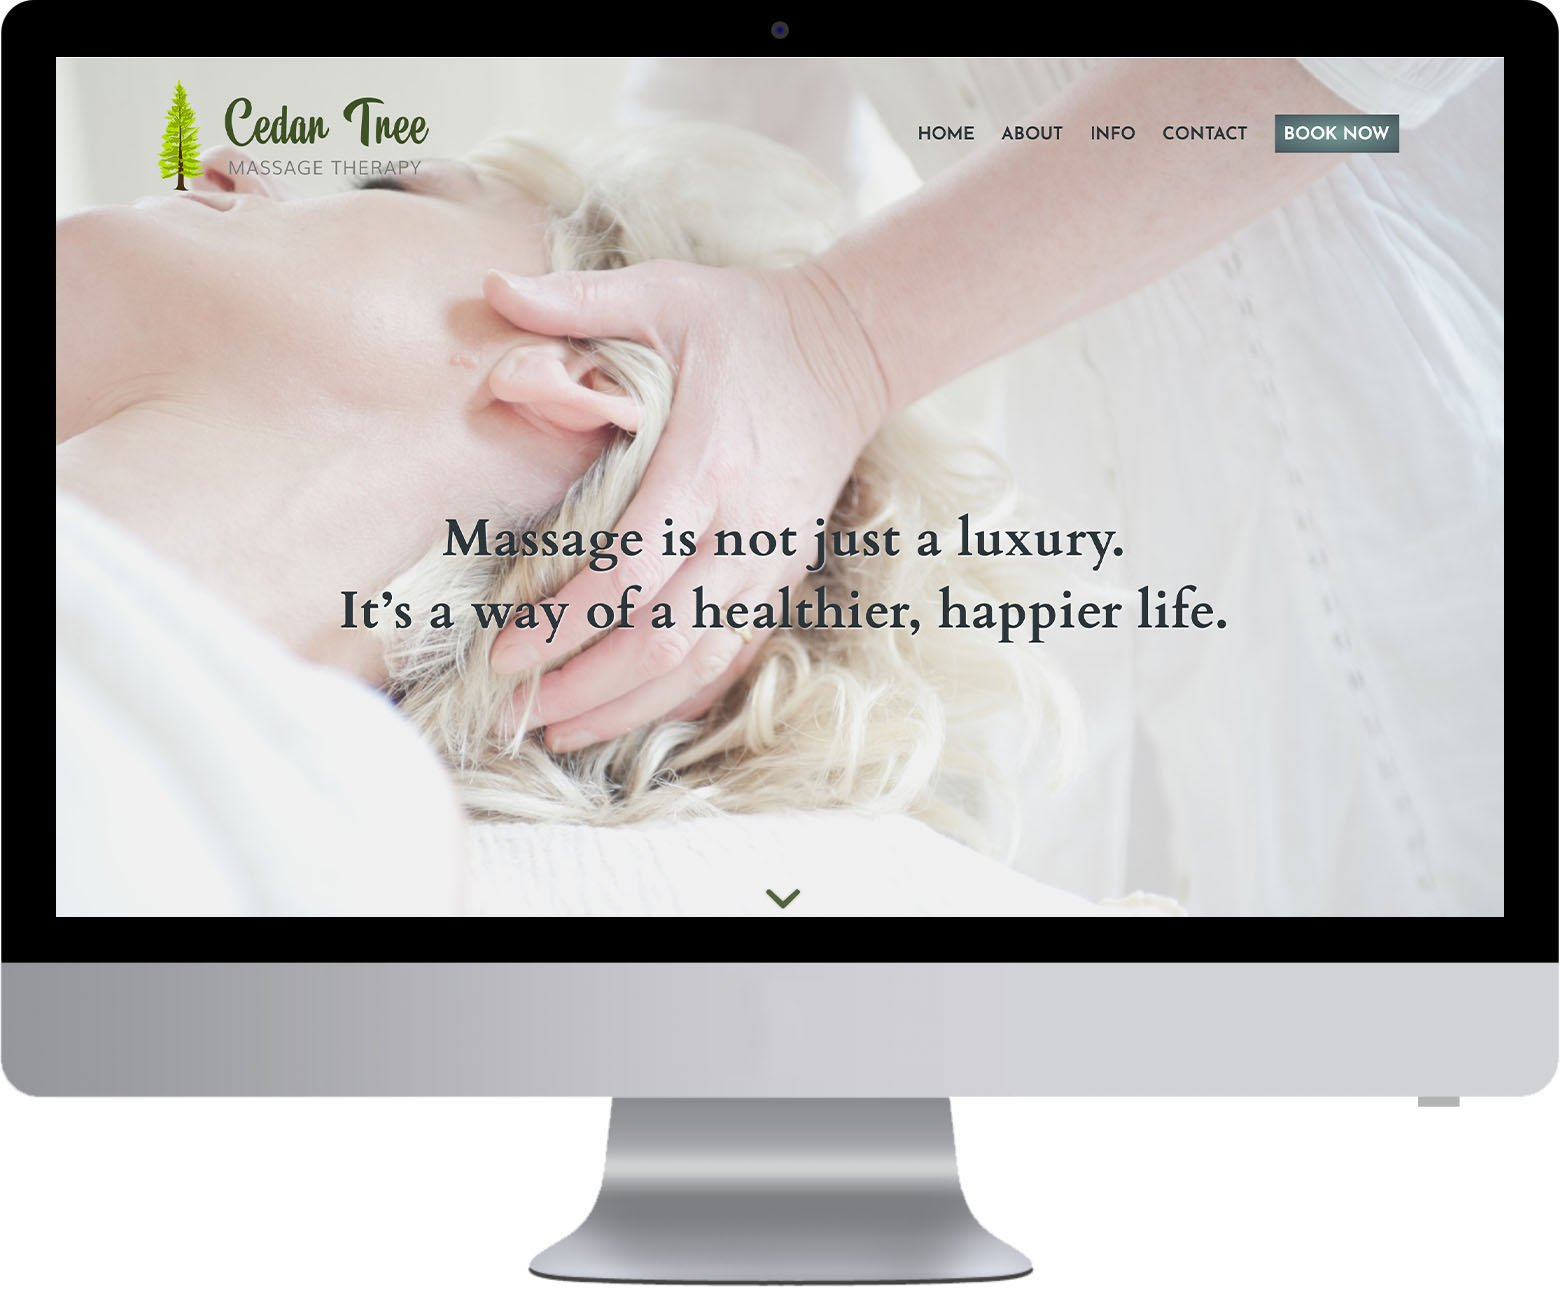 Vancouver Website Development - Cedar Tree Massage Therapy